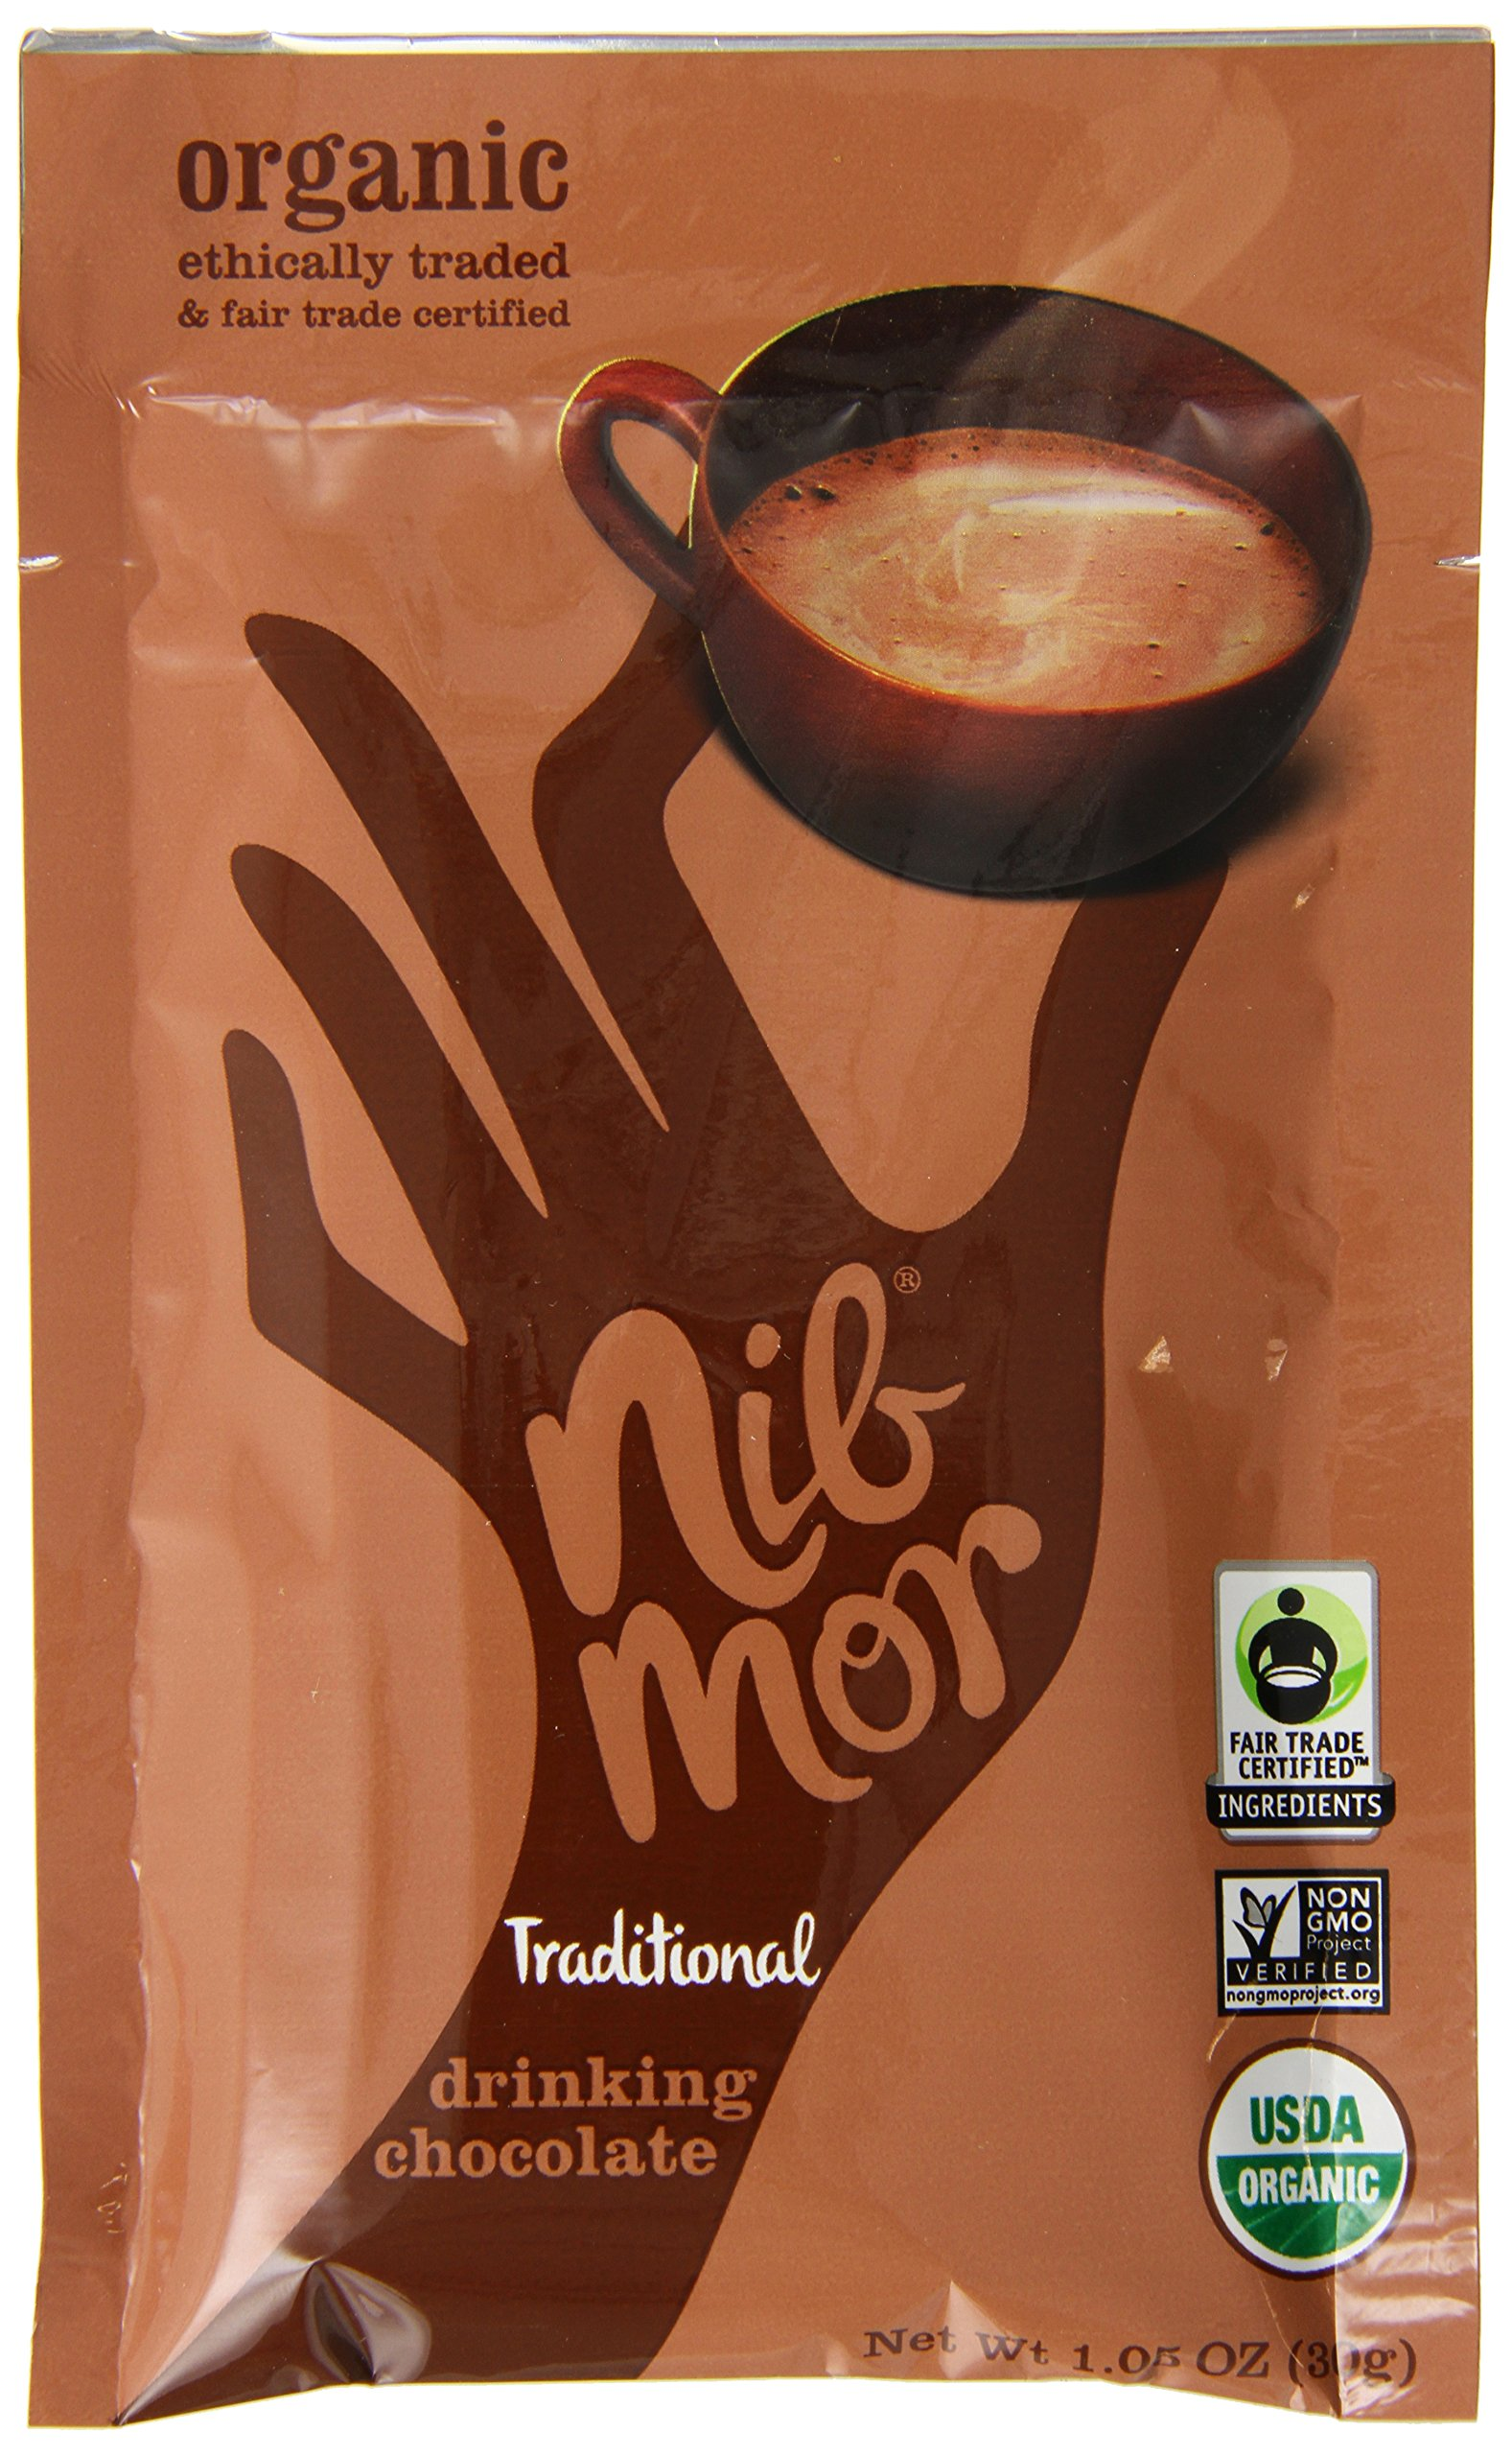 NibMor Organic Traditional Drinking Chocolate, 1.05 Ounce (Pack of 6)